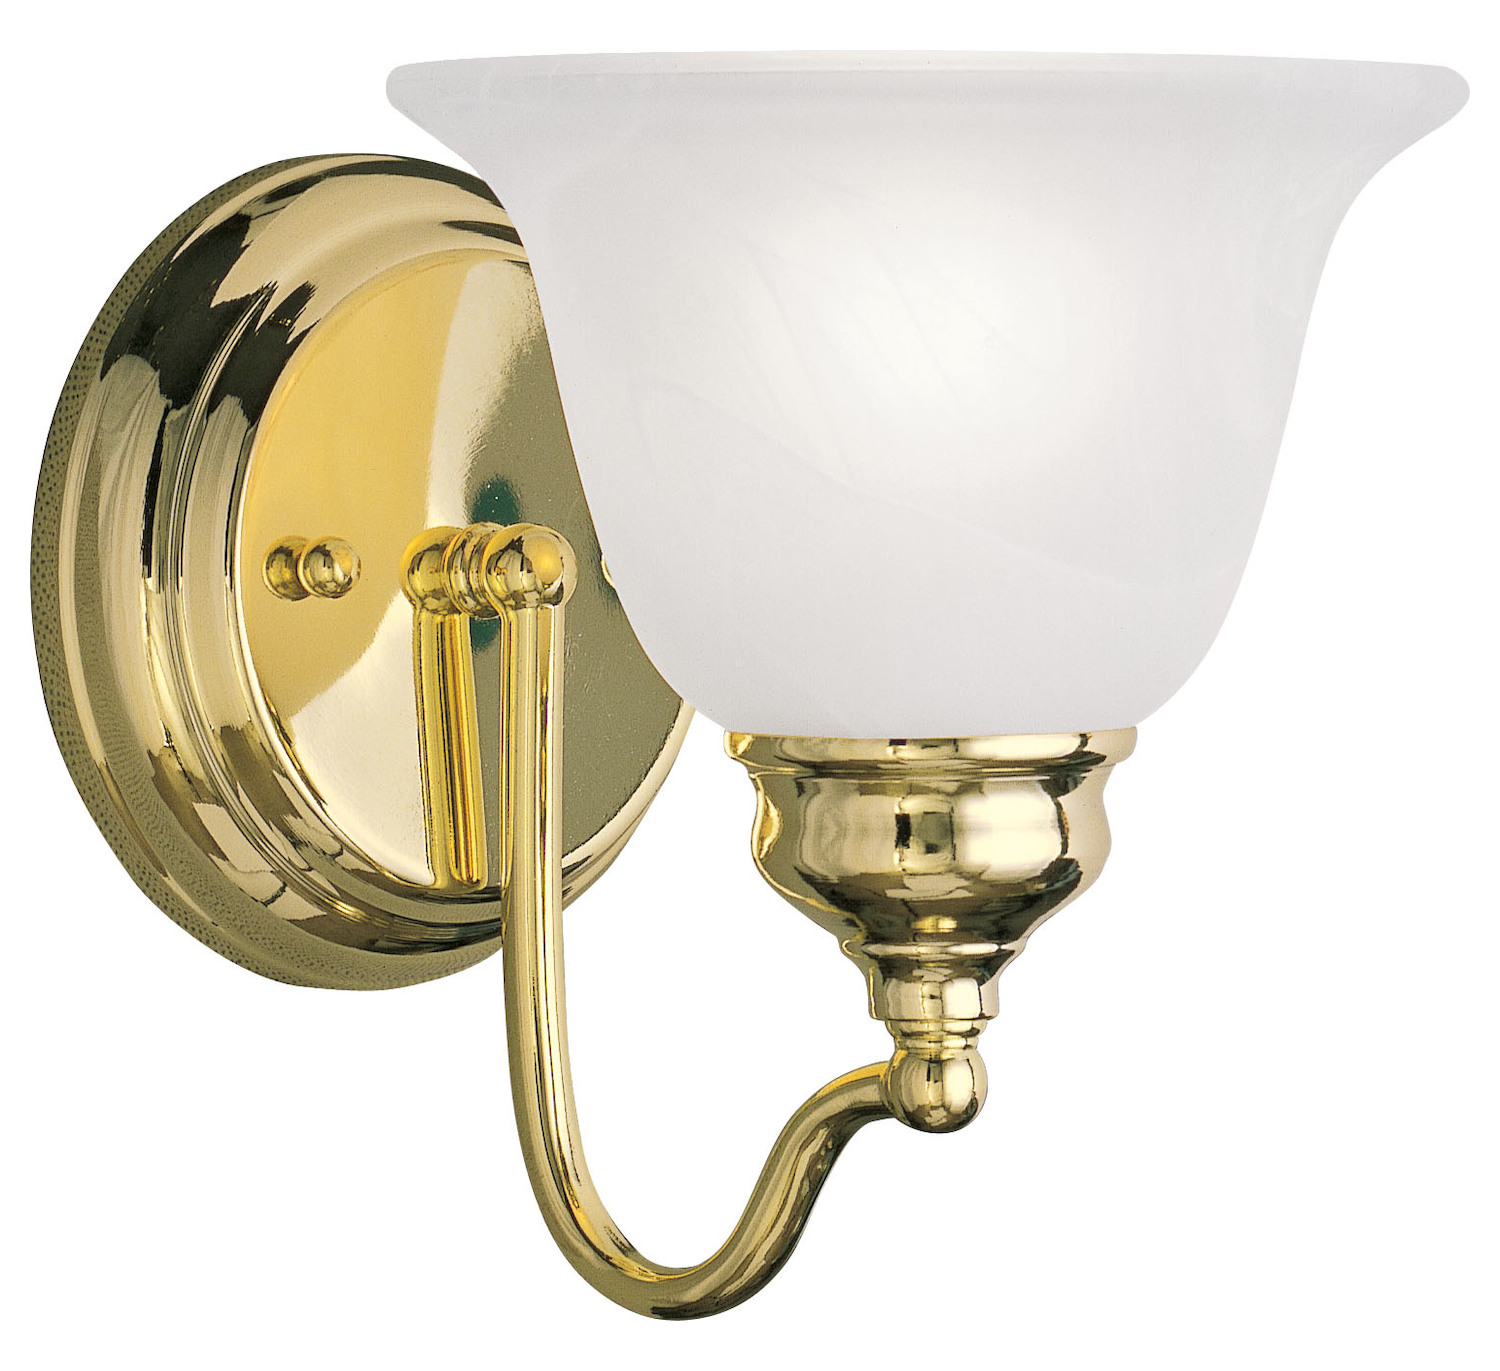 Livex Lighting Polished Brass Bathroom Sconce Polished Brass 1351 02 From Essex Collection